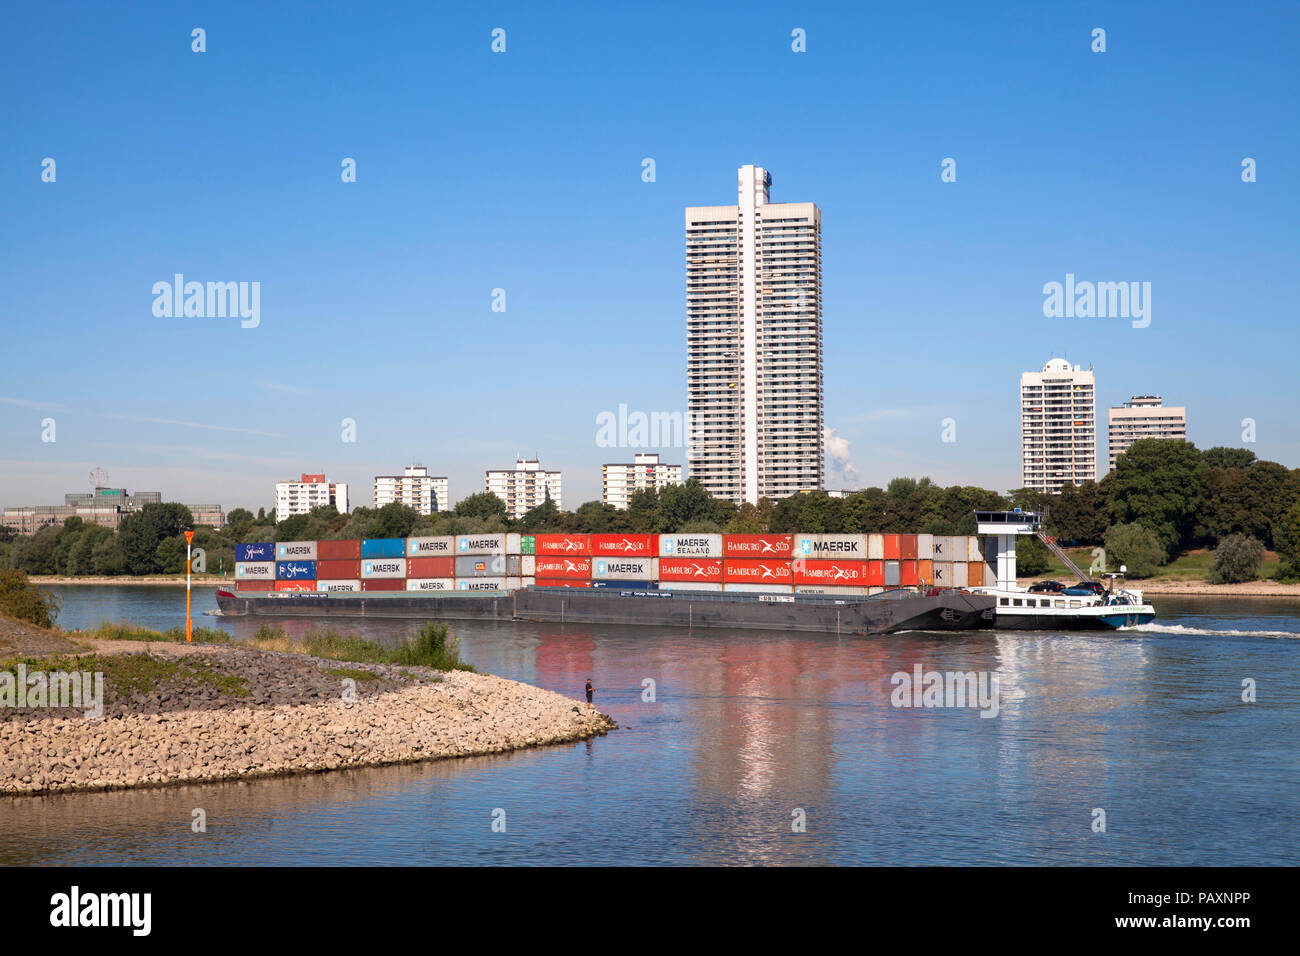 the skyscraper Colonia-House in the district Riehl, river Rhine, container vessel, Cologne, Germany,  das Colonia-Haus im Stadtteil Riehl, Rhein, Cont Stock Photo